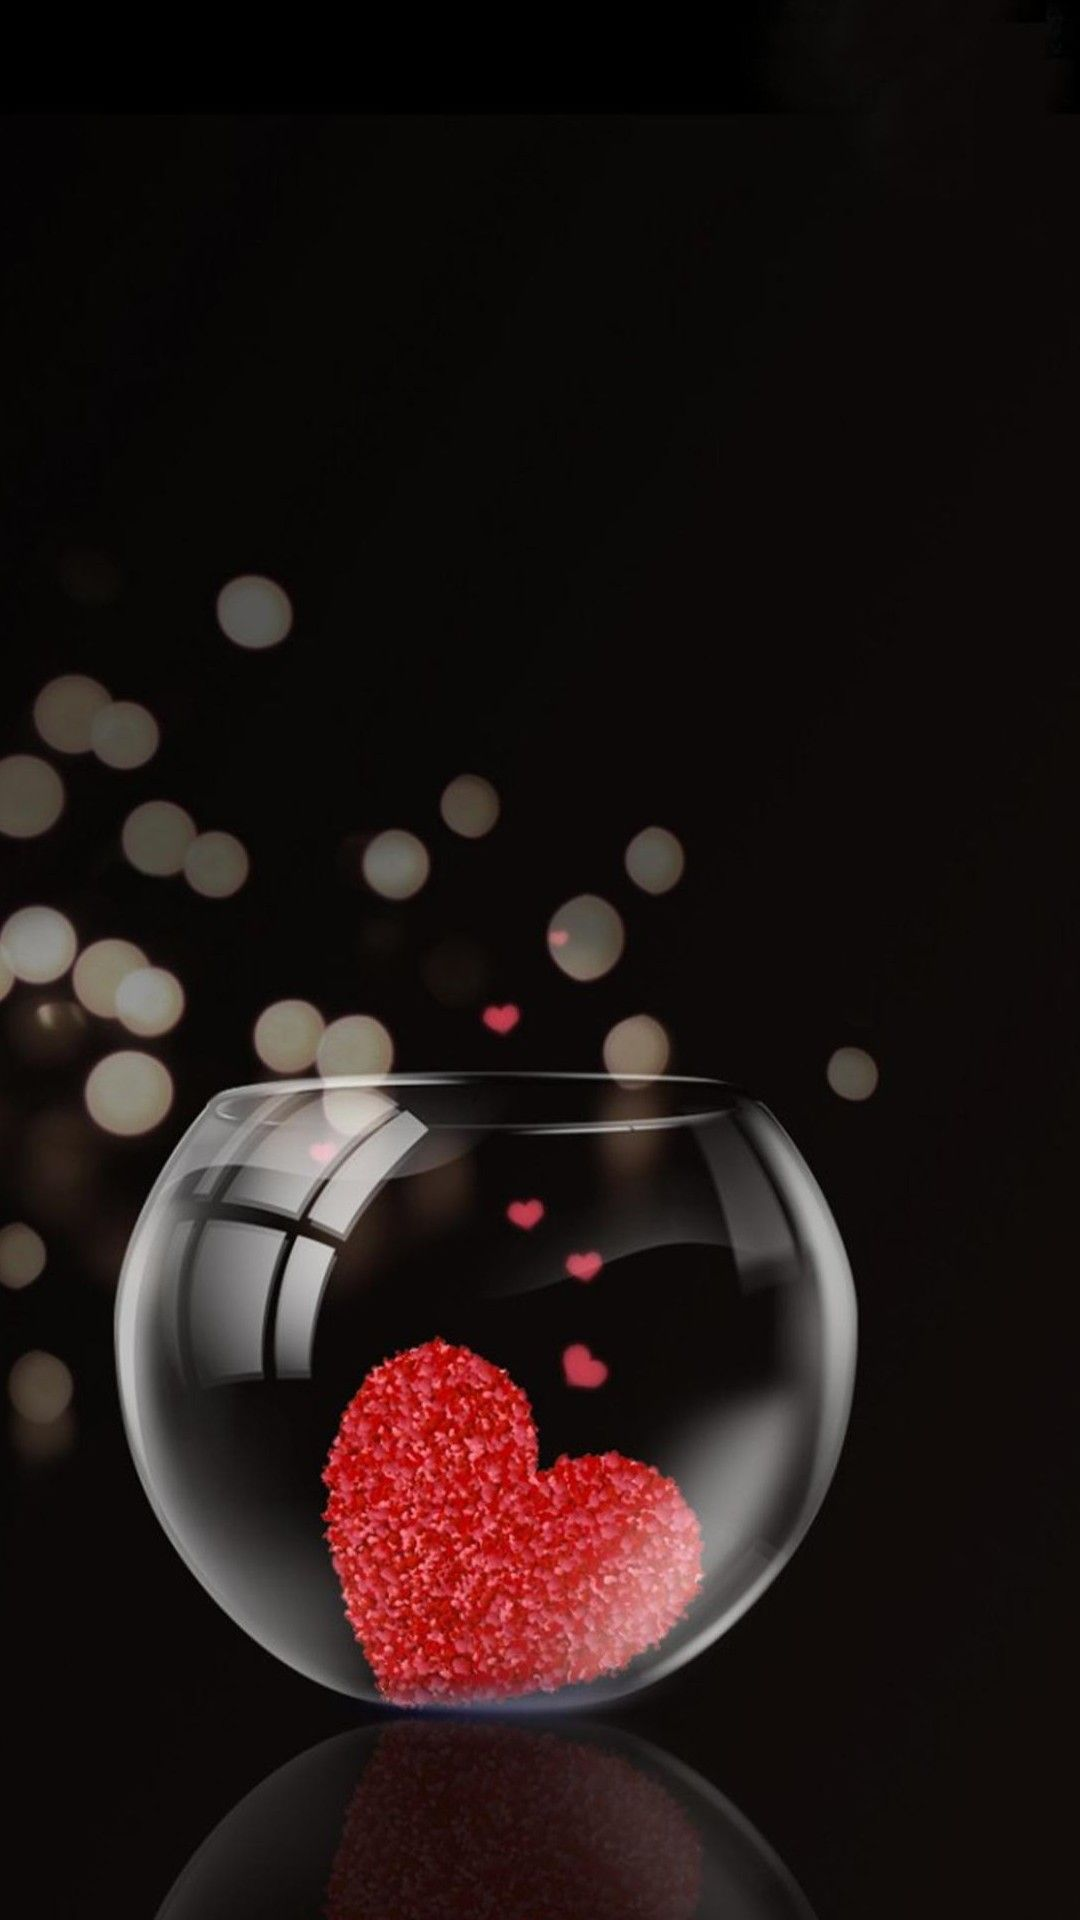 3D Love iPhone Wallpaper Love wallpaper, Heart wallpaper